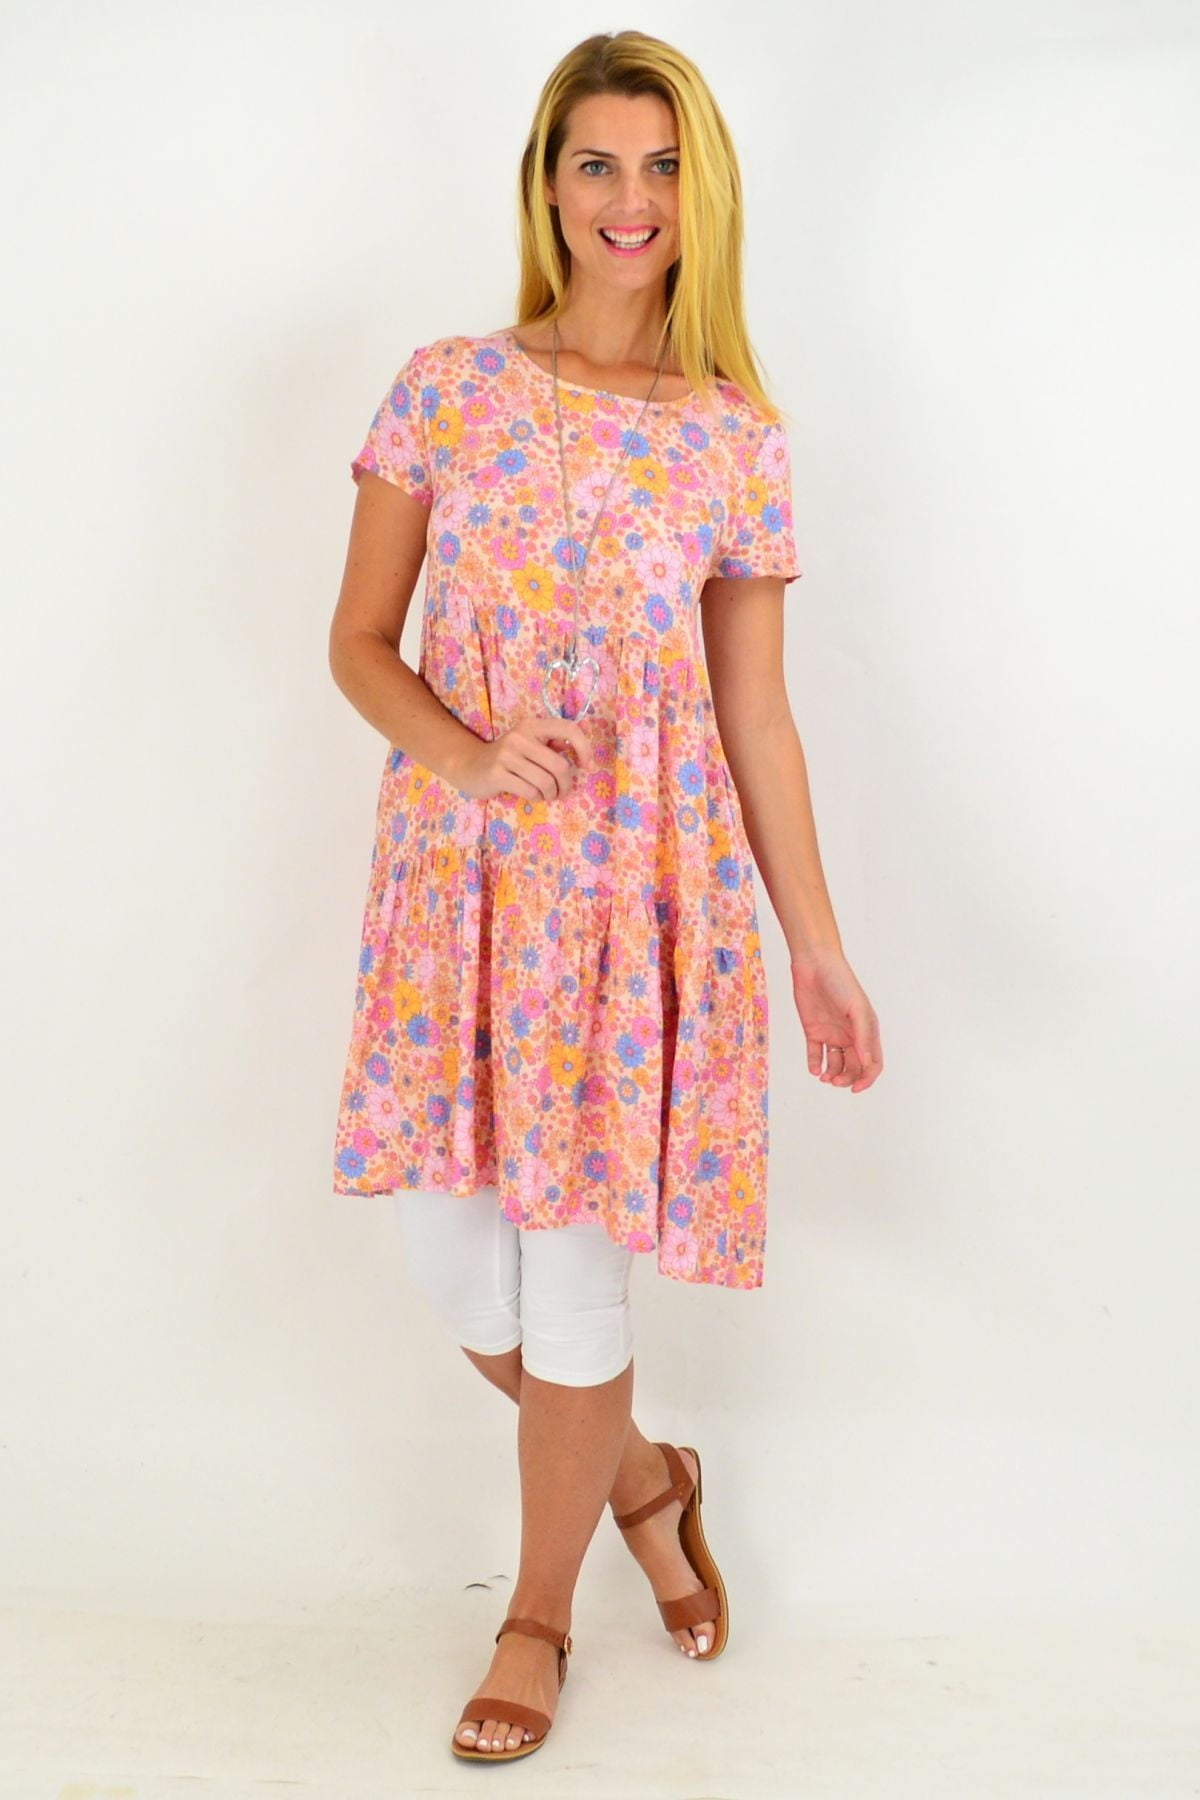 Pink Floral Ruffle Tunic Dress | I Love Tunics | Tunic Tops | Tunic | Tunic Dresses  | womens clothing online